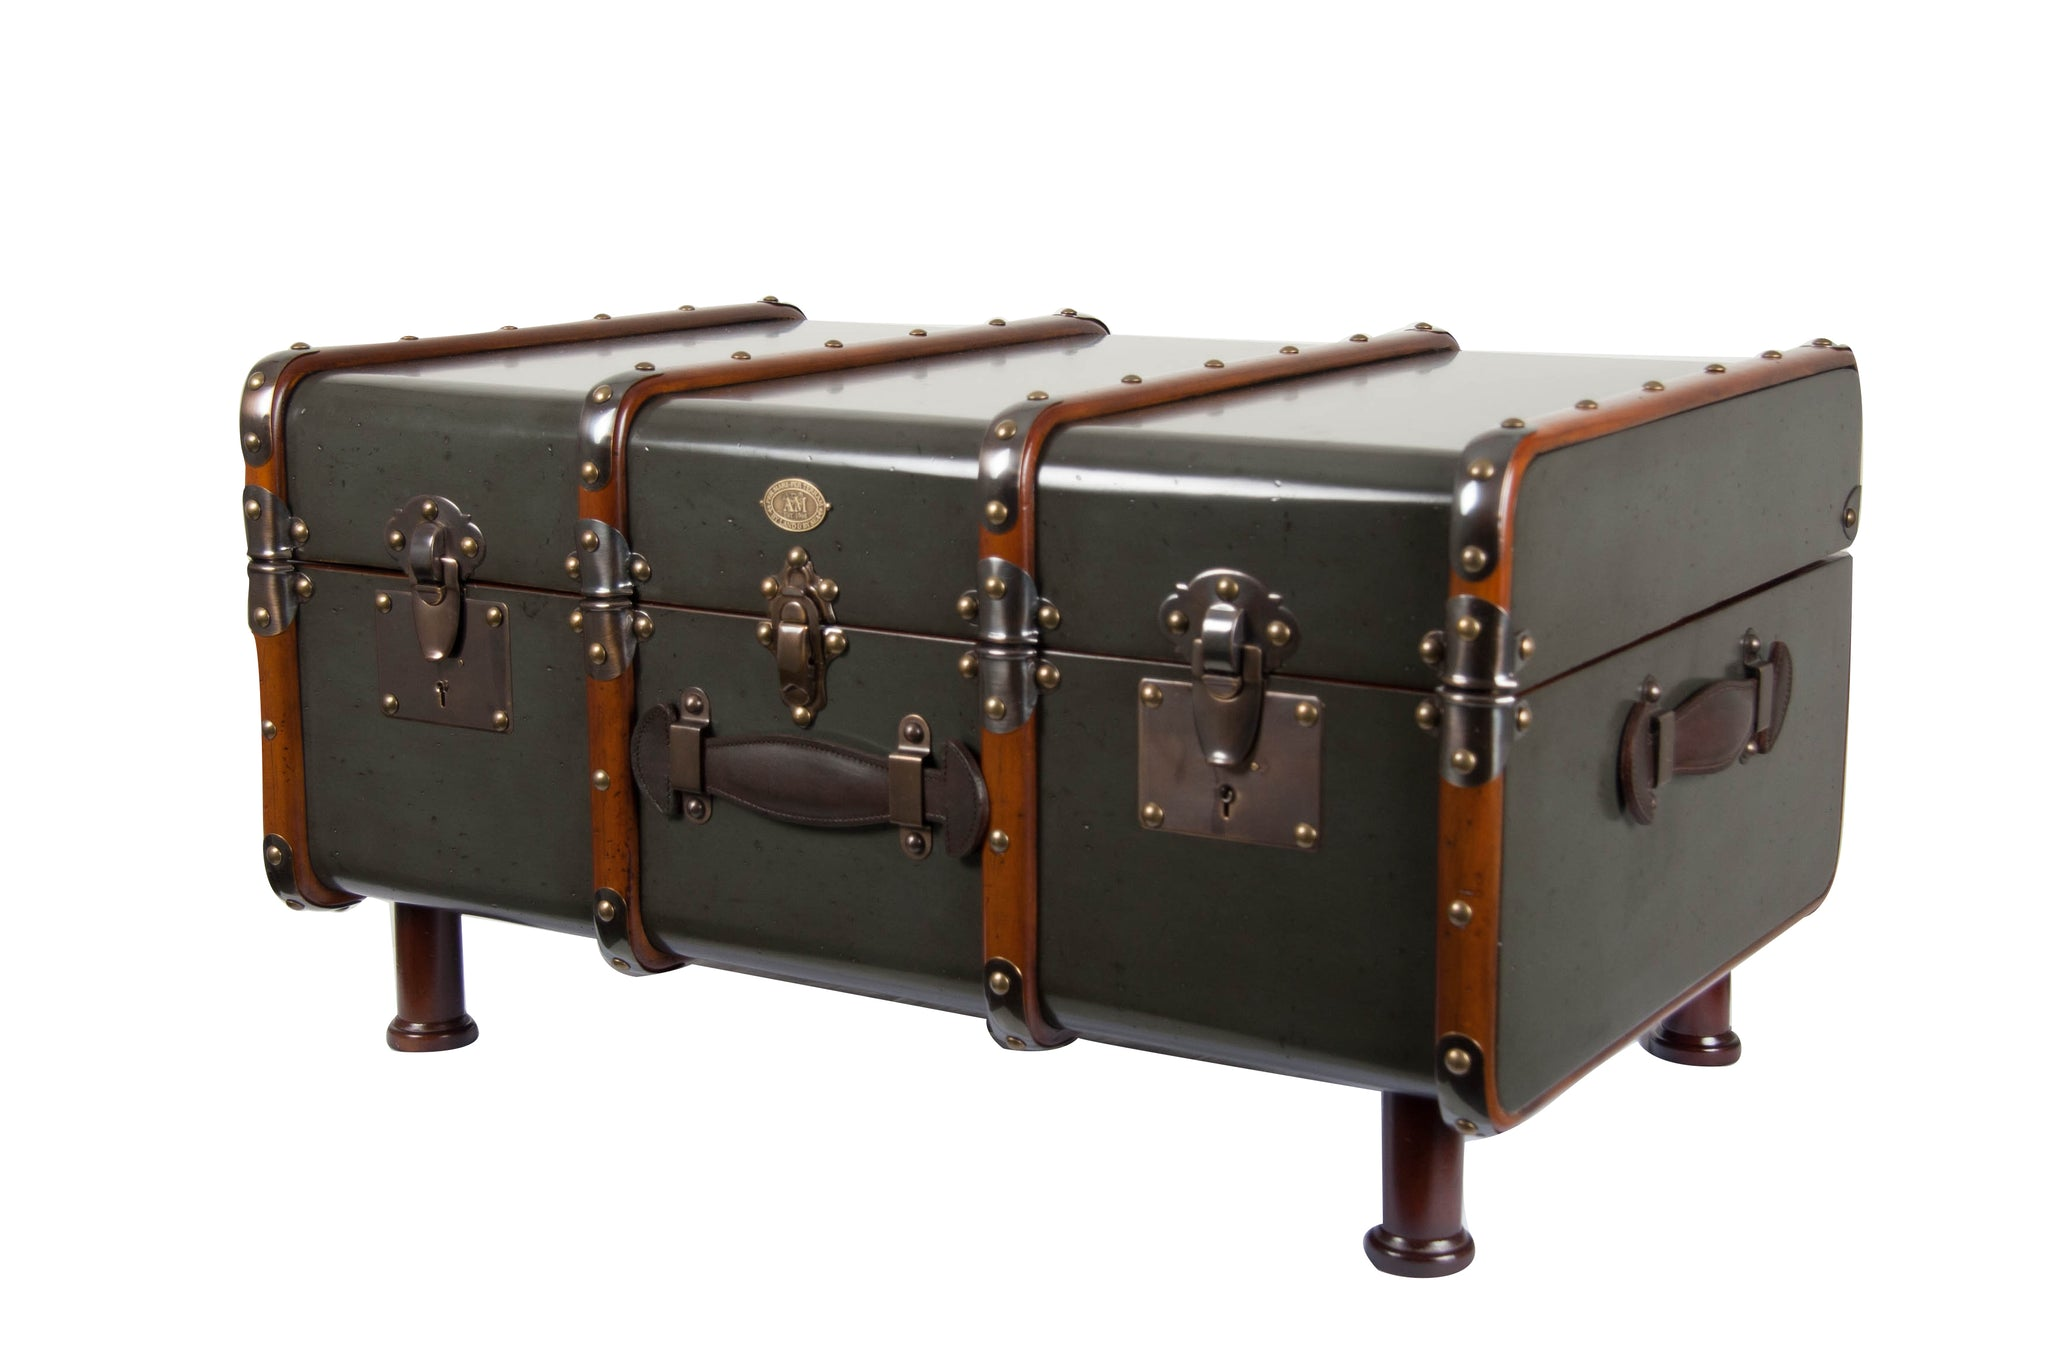 Grey Wooden Captains Storage Trunk With Legs And Brass Bumpers